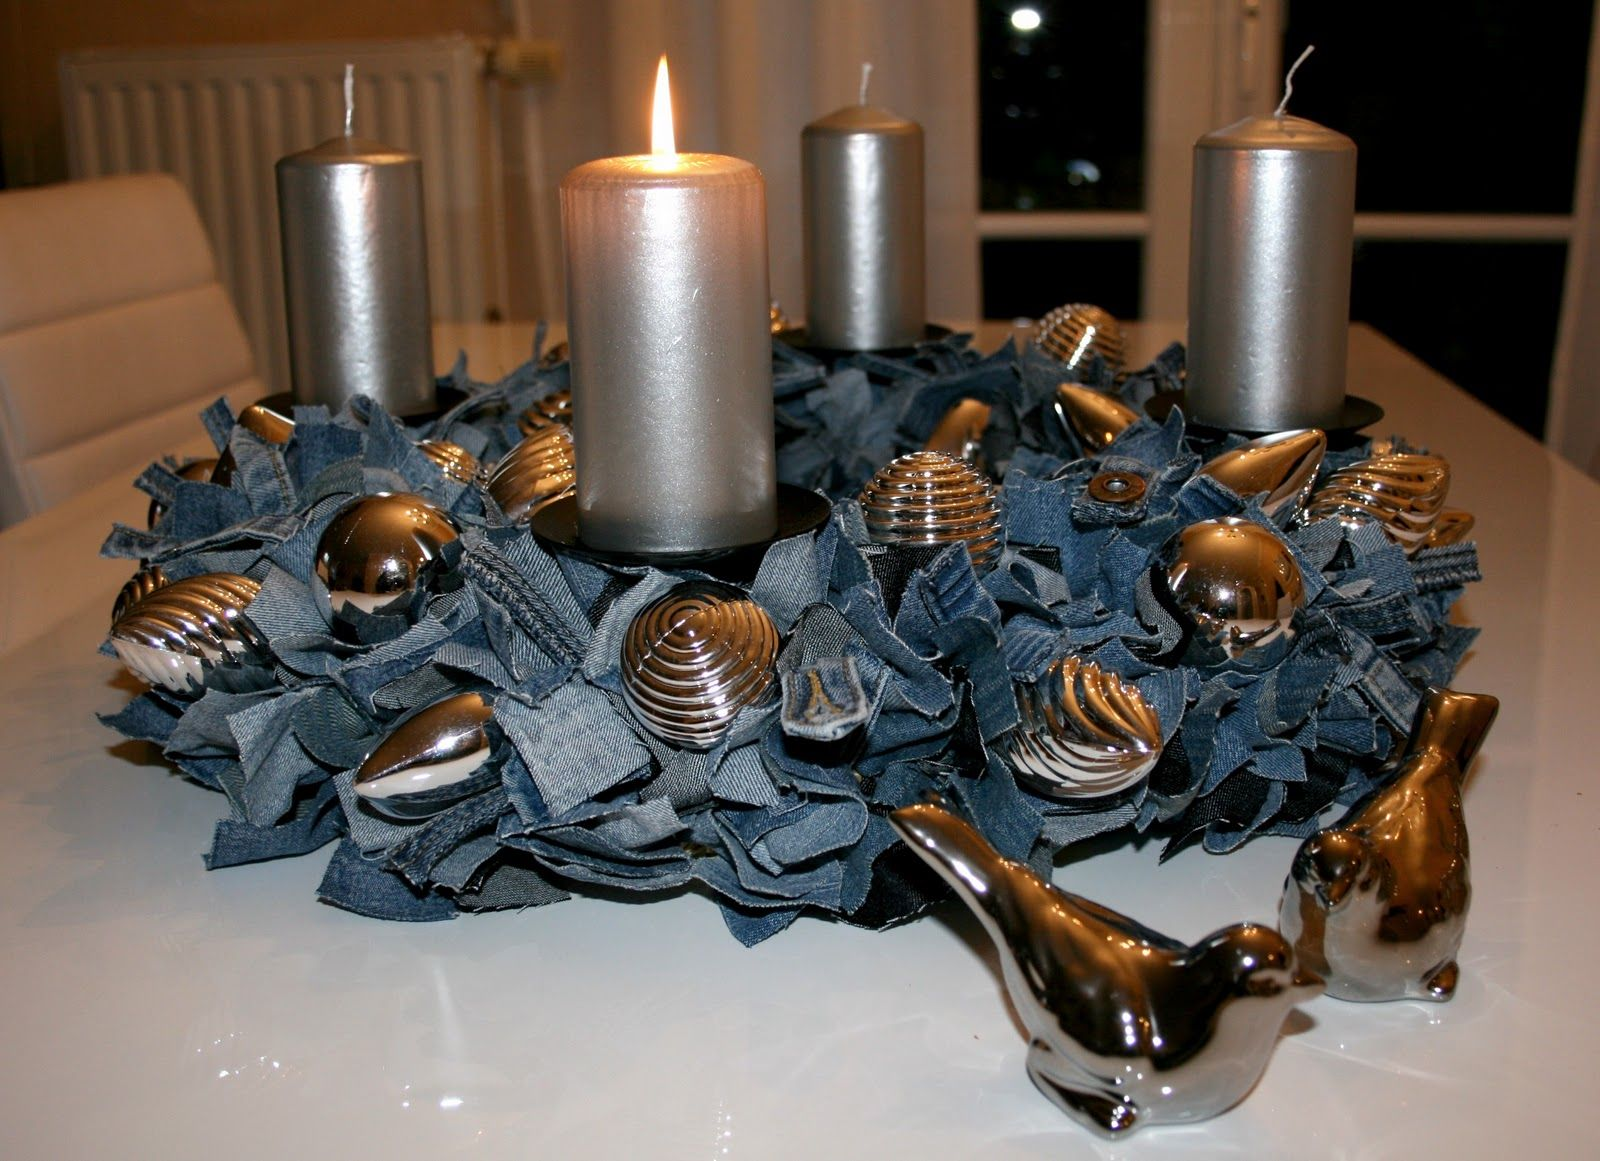 Recycled denim table centerpiece with pearls instead of for Recycled centerpiece ideas